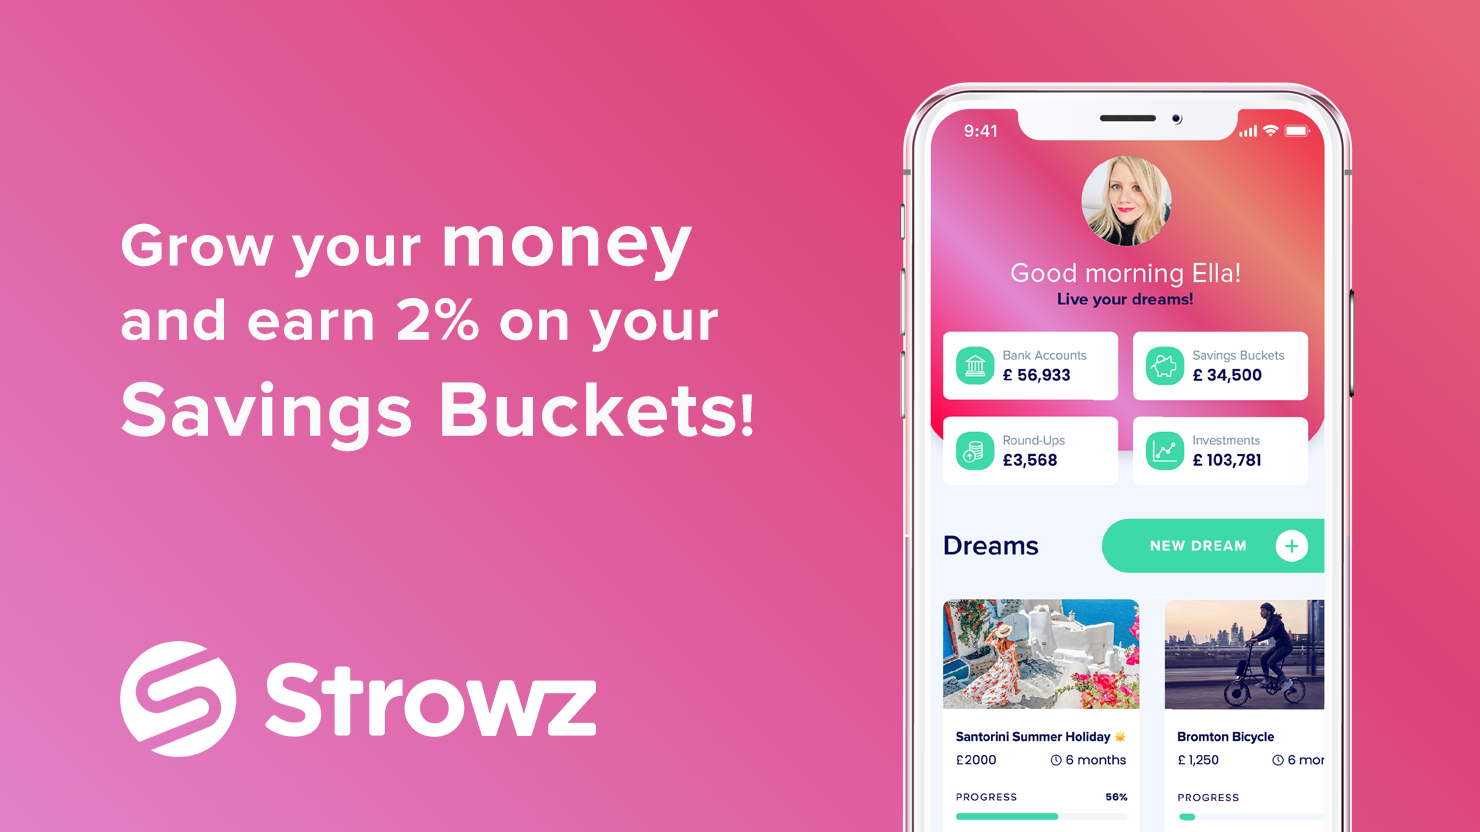 Strowz crowdfunding campaign is now live and overfunding at 120% on Seedrs!